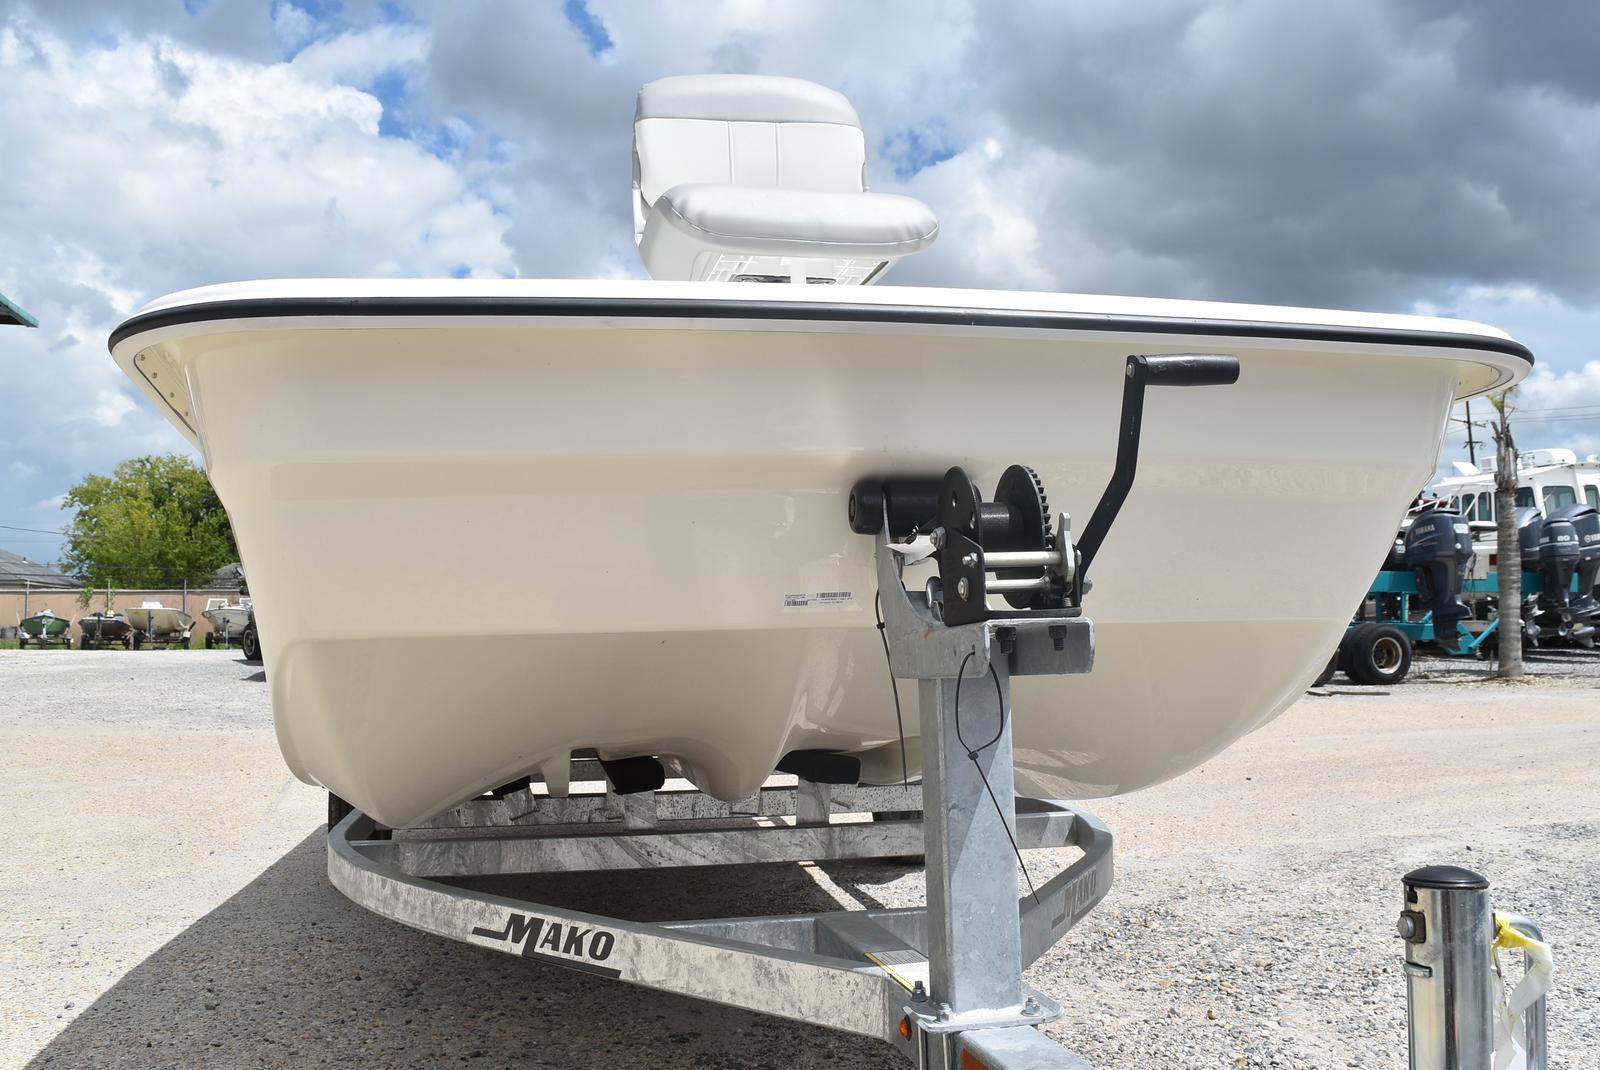 2020 Mako boat for sale, model of the boat is Pro Skiff 17, 75 ELPT & Image # 363 of 702